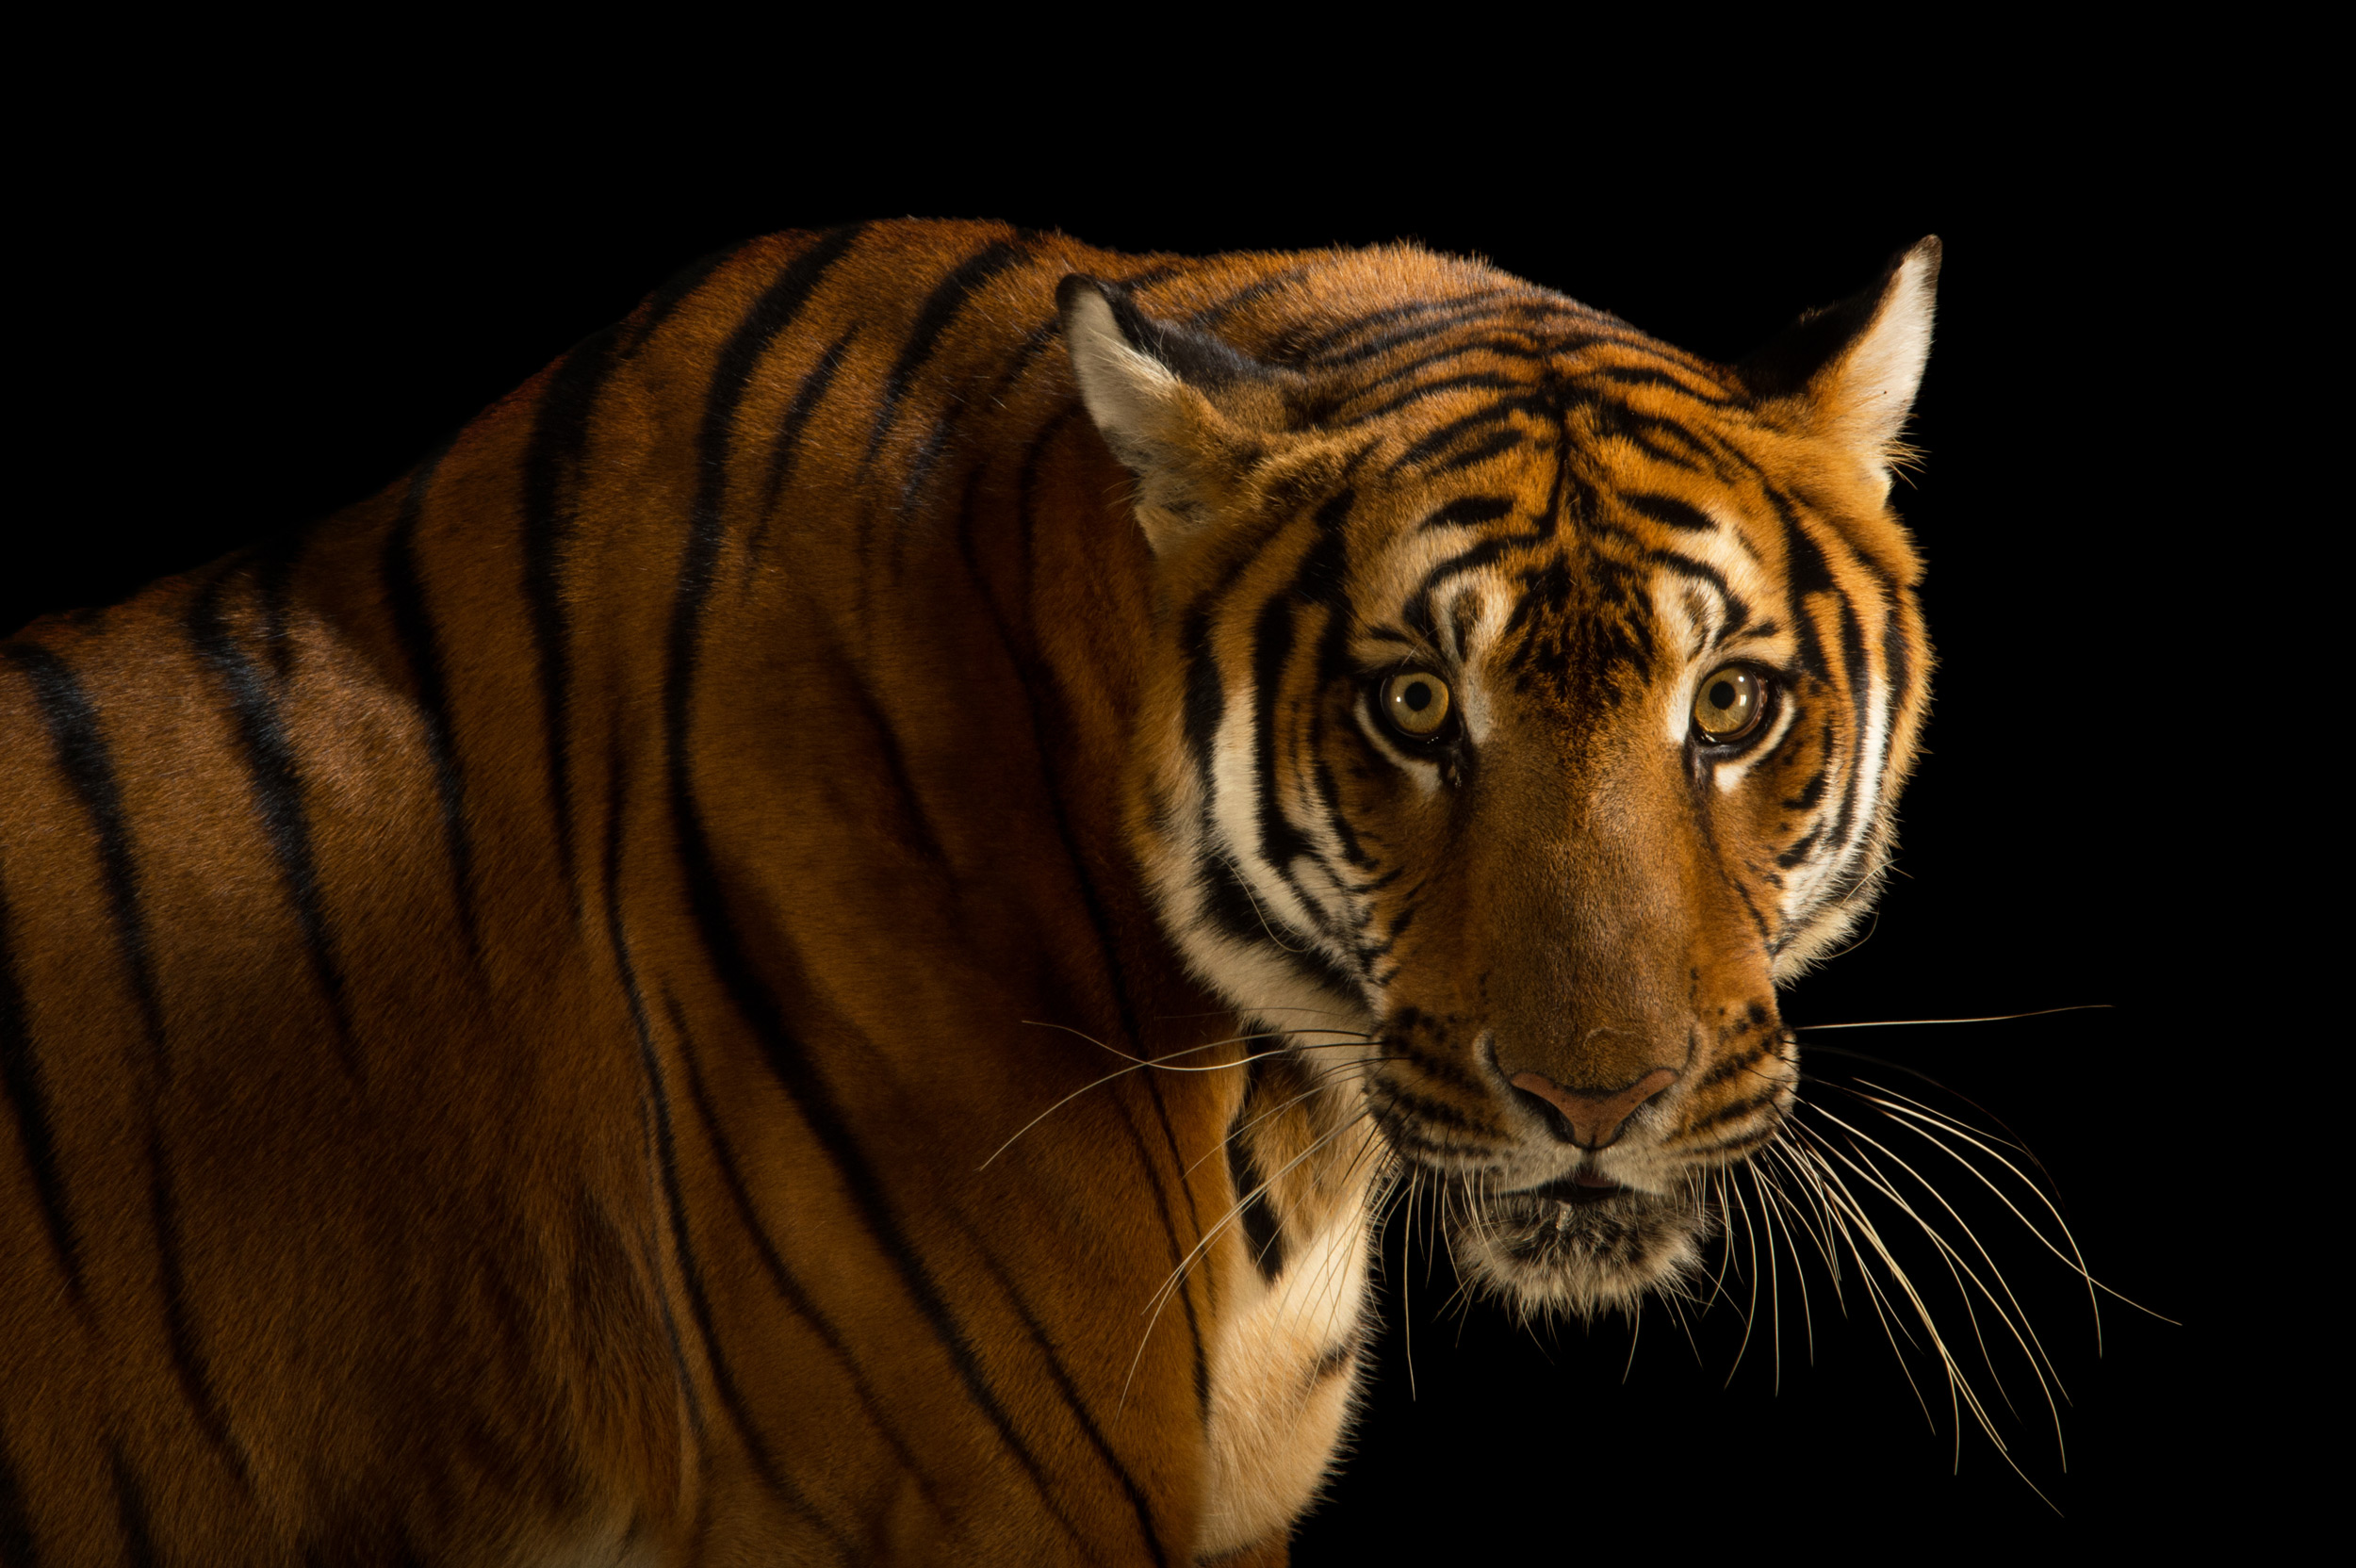 the south china tiger essay The sumatran tiger is similar to a typical tiger but smaller the sumatran tiger currently critically endangered and numbers are south american conservation volunteers animal cruelty china consumption deforestation dolphin elephant energy environment food fracking fur ivory japan meat.